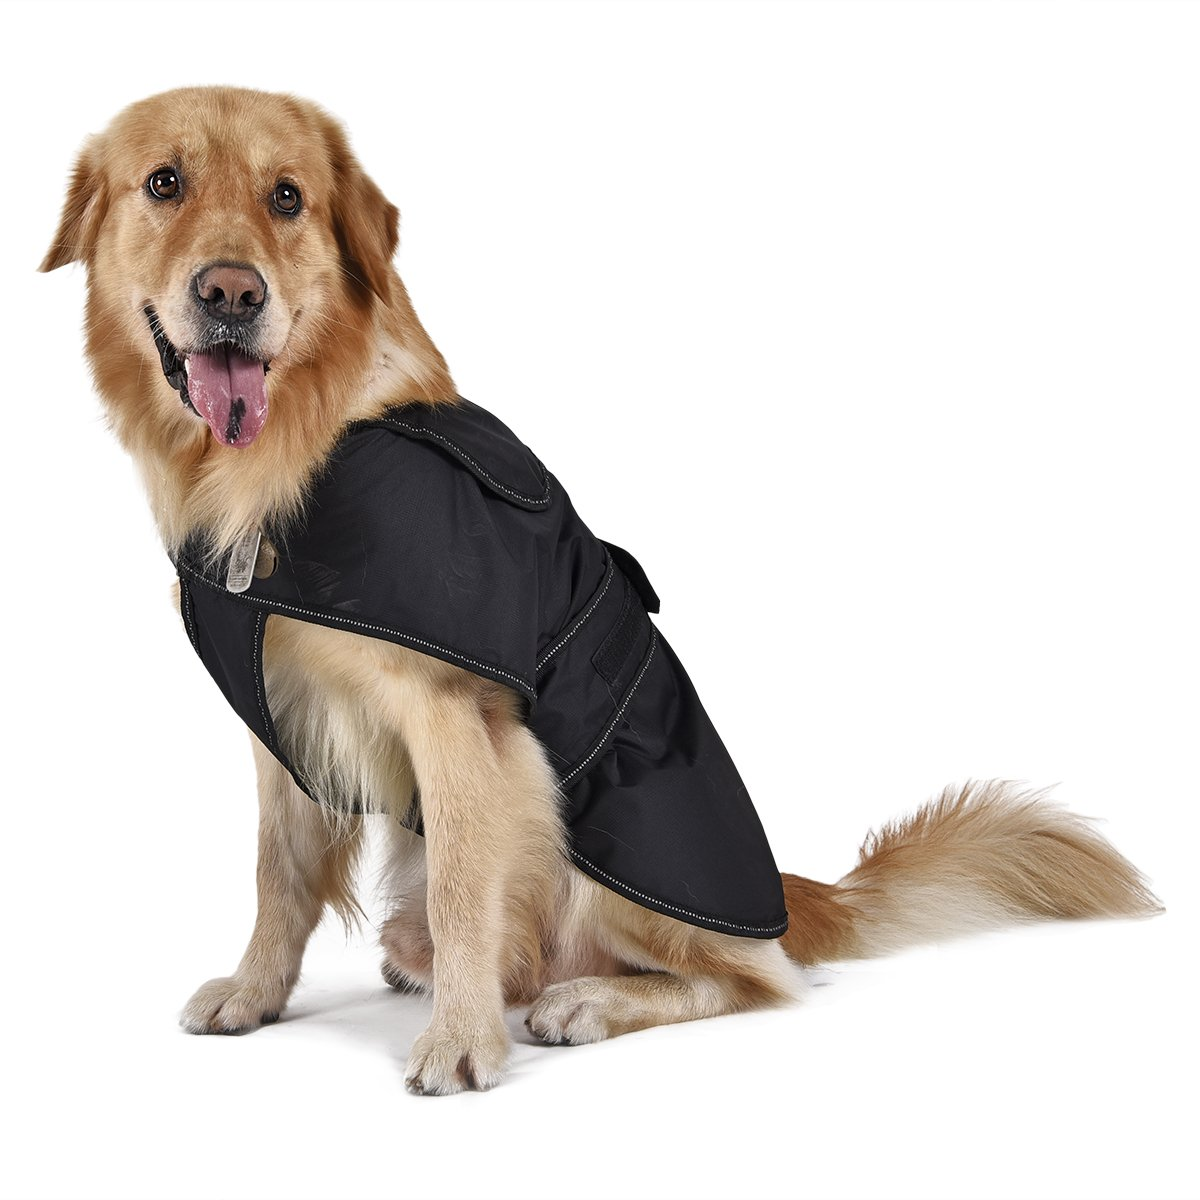 PAWZ Road Dog Coat with Detachable Fleece Lining, Winter Jacket Warm Dog Apparel for Cold Weather Dog Vest for Small Medium Large Dogs with Strip Reflective,Waterproof and No Sticky Hair 18  L